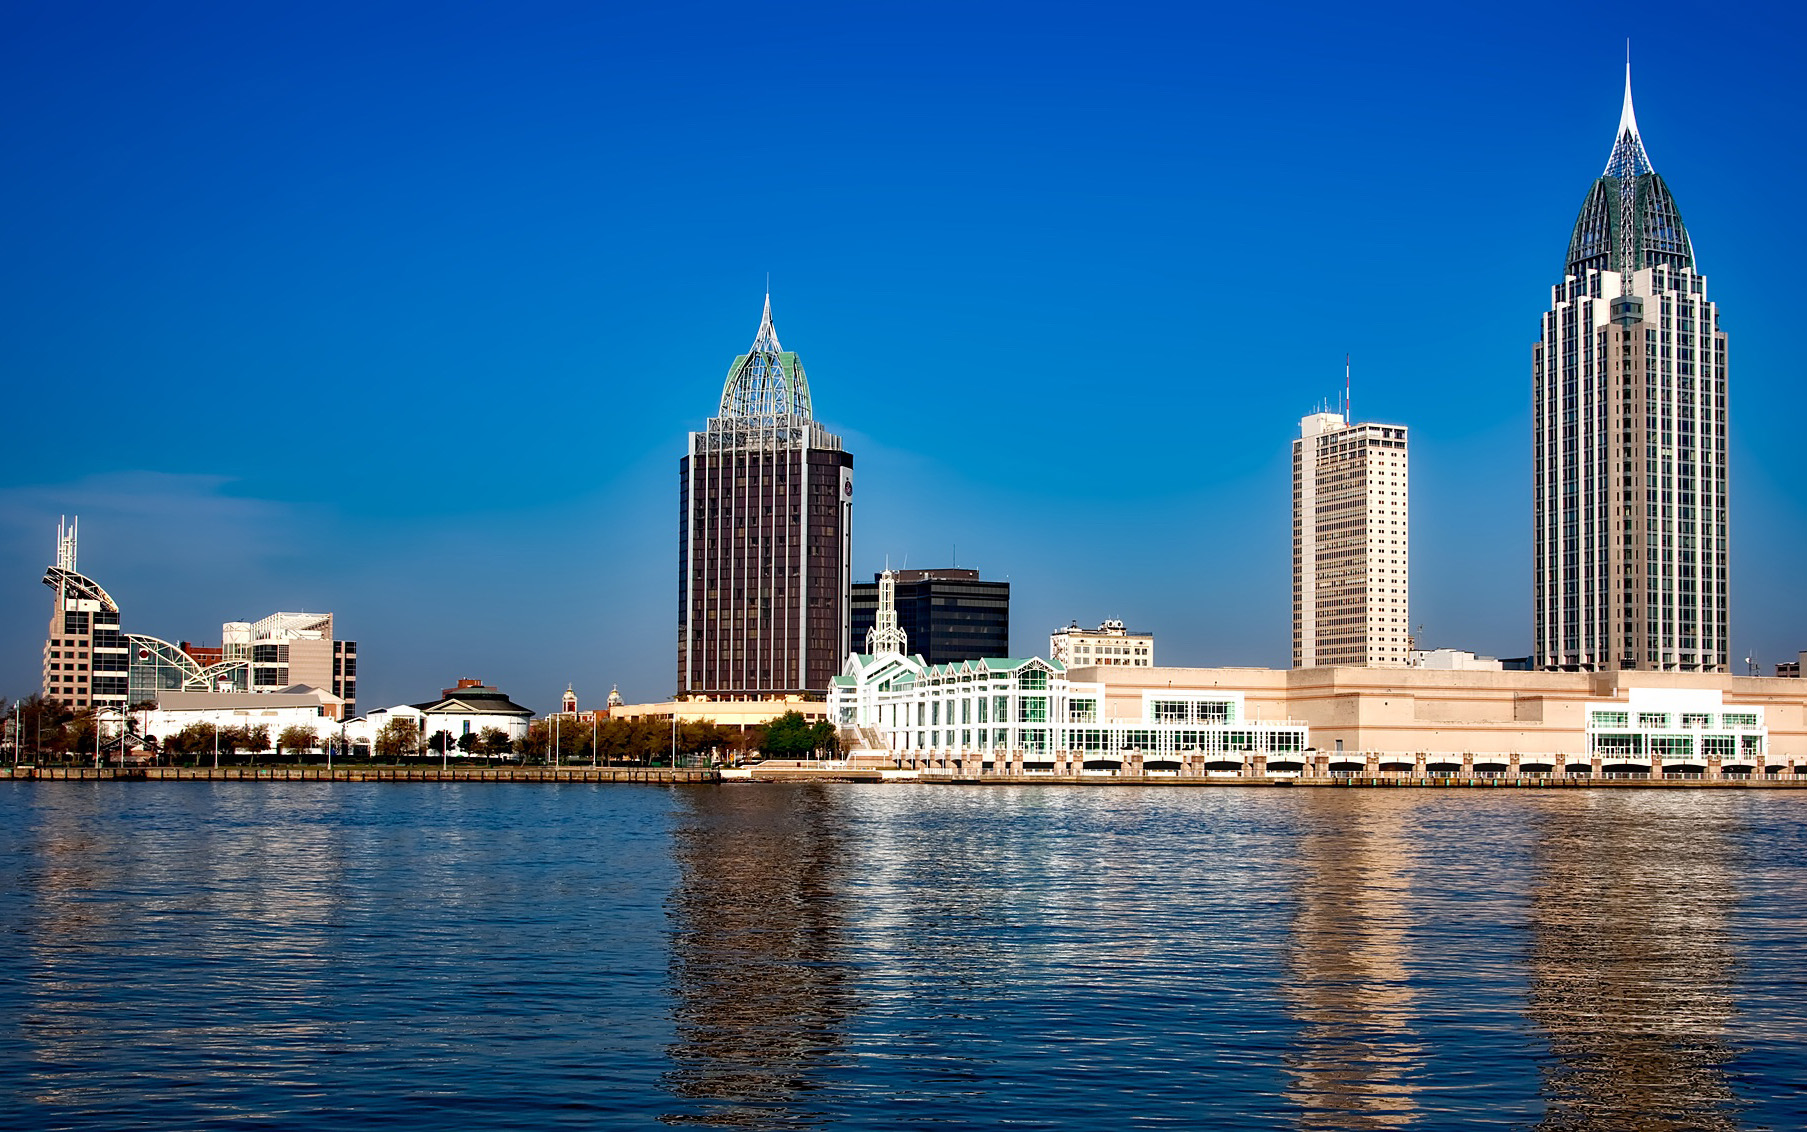 Mobile, Alabama skyline